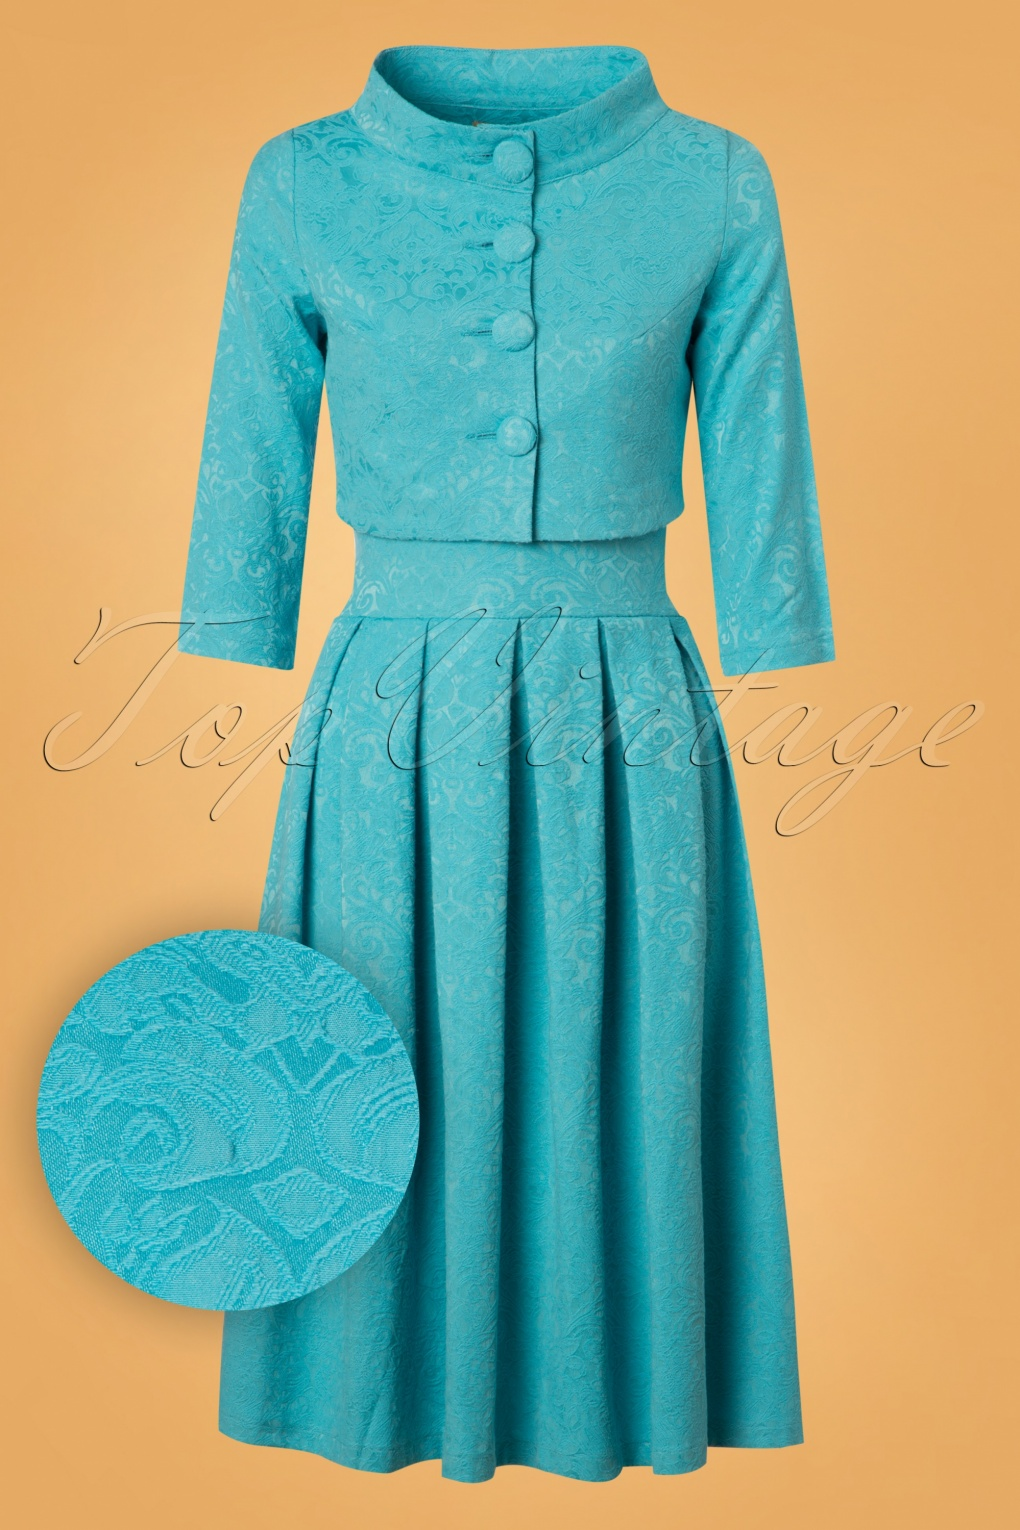 1960s Dresses | 60s Dresses Mod, Mini, Jakie O, Hippie 60s Marianne Jacquard Twin Set in Aqua Blue £71.38 AT vintagedancer.com